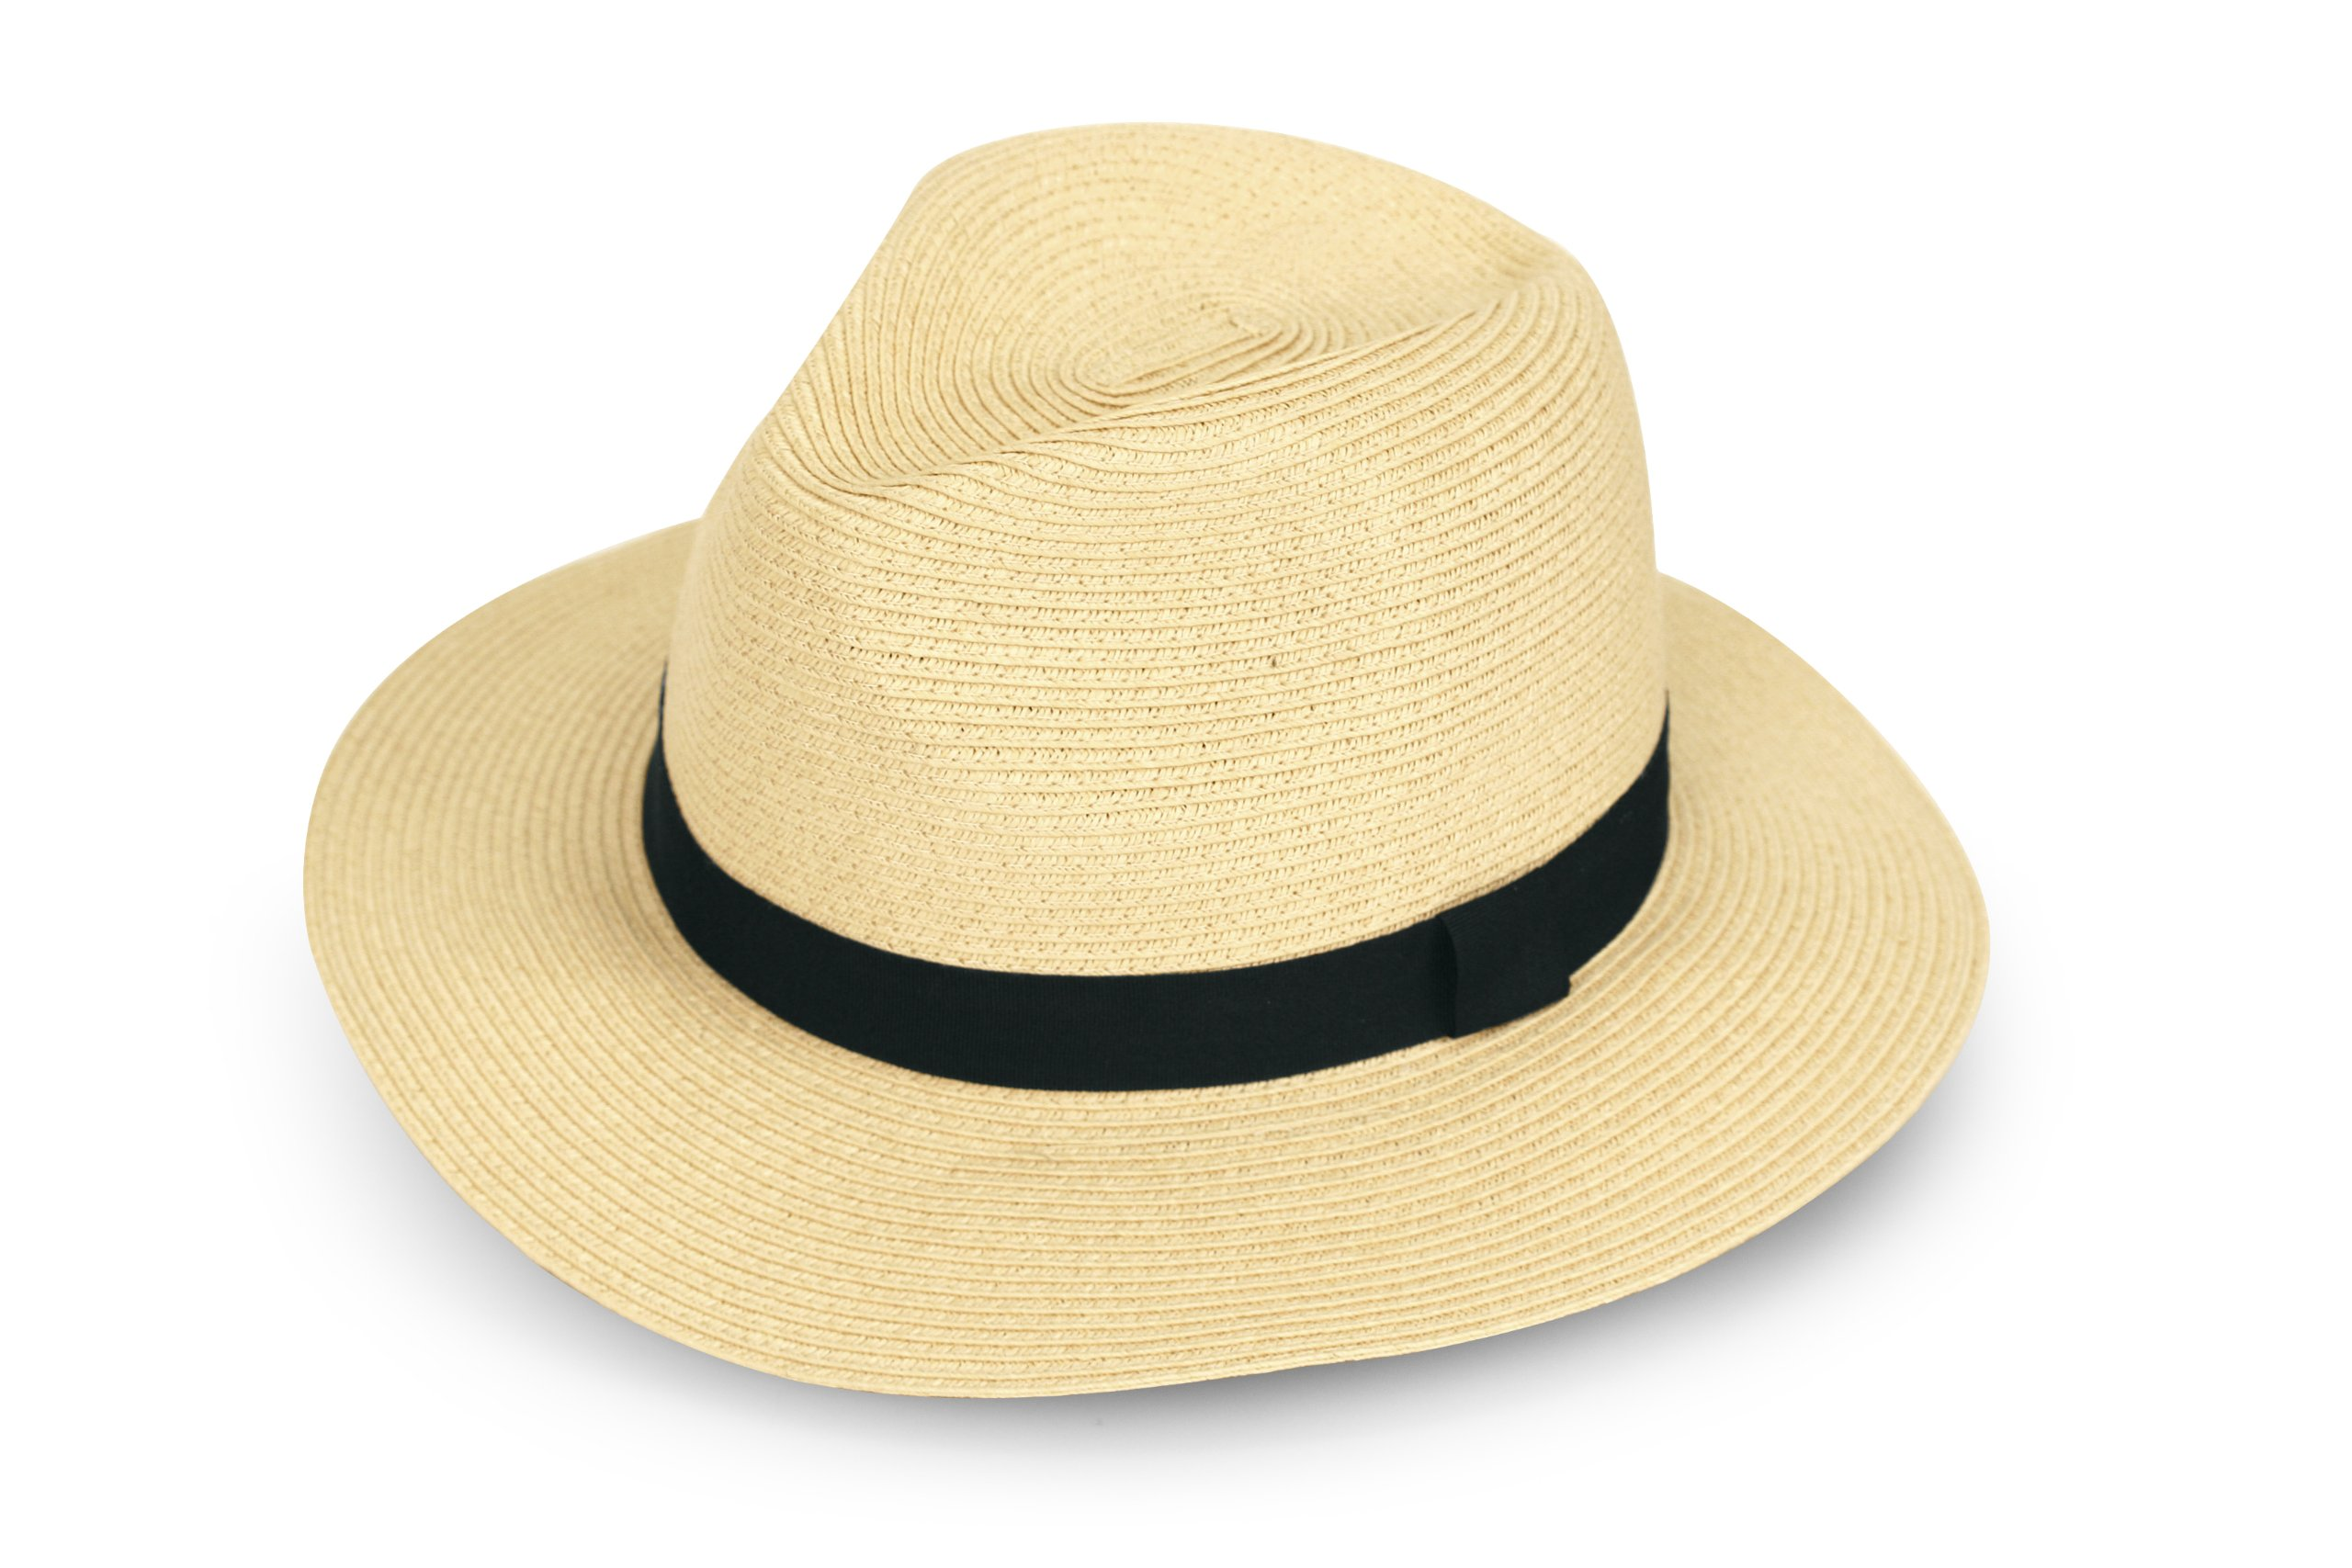 Sunday Afternoons Havana Hat, Cream, Large/X-Large by Sunday Afternoons